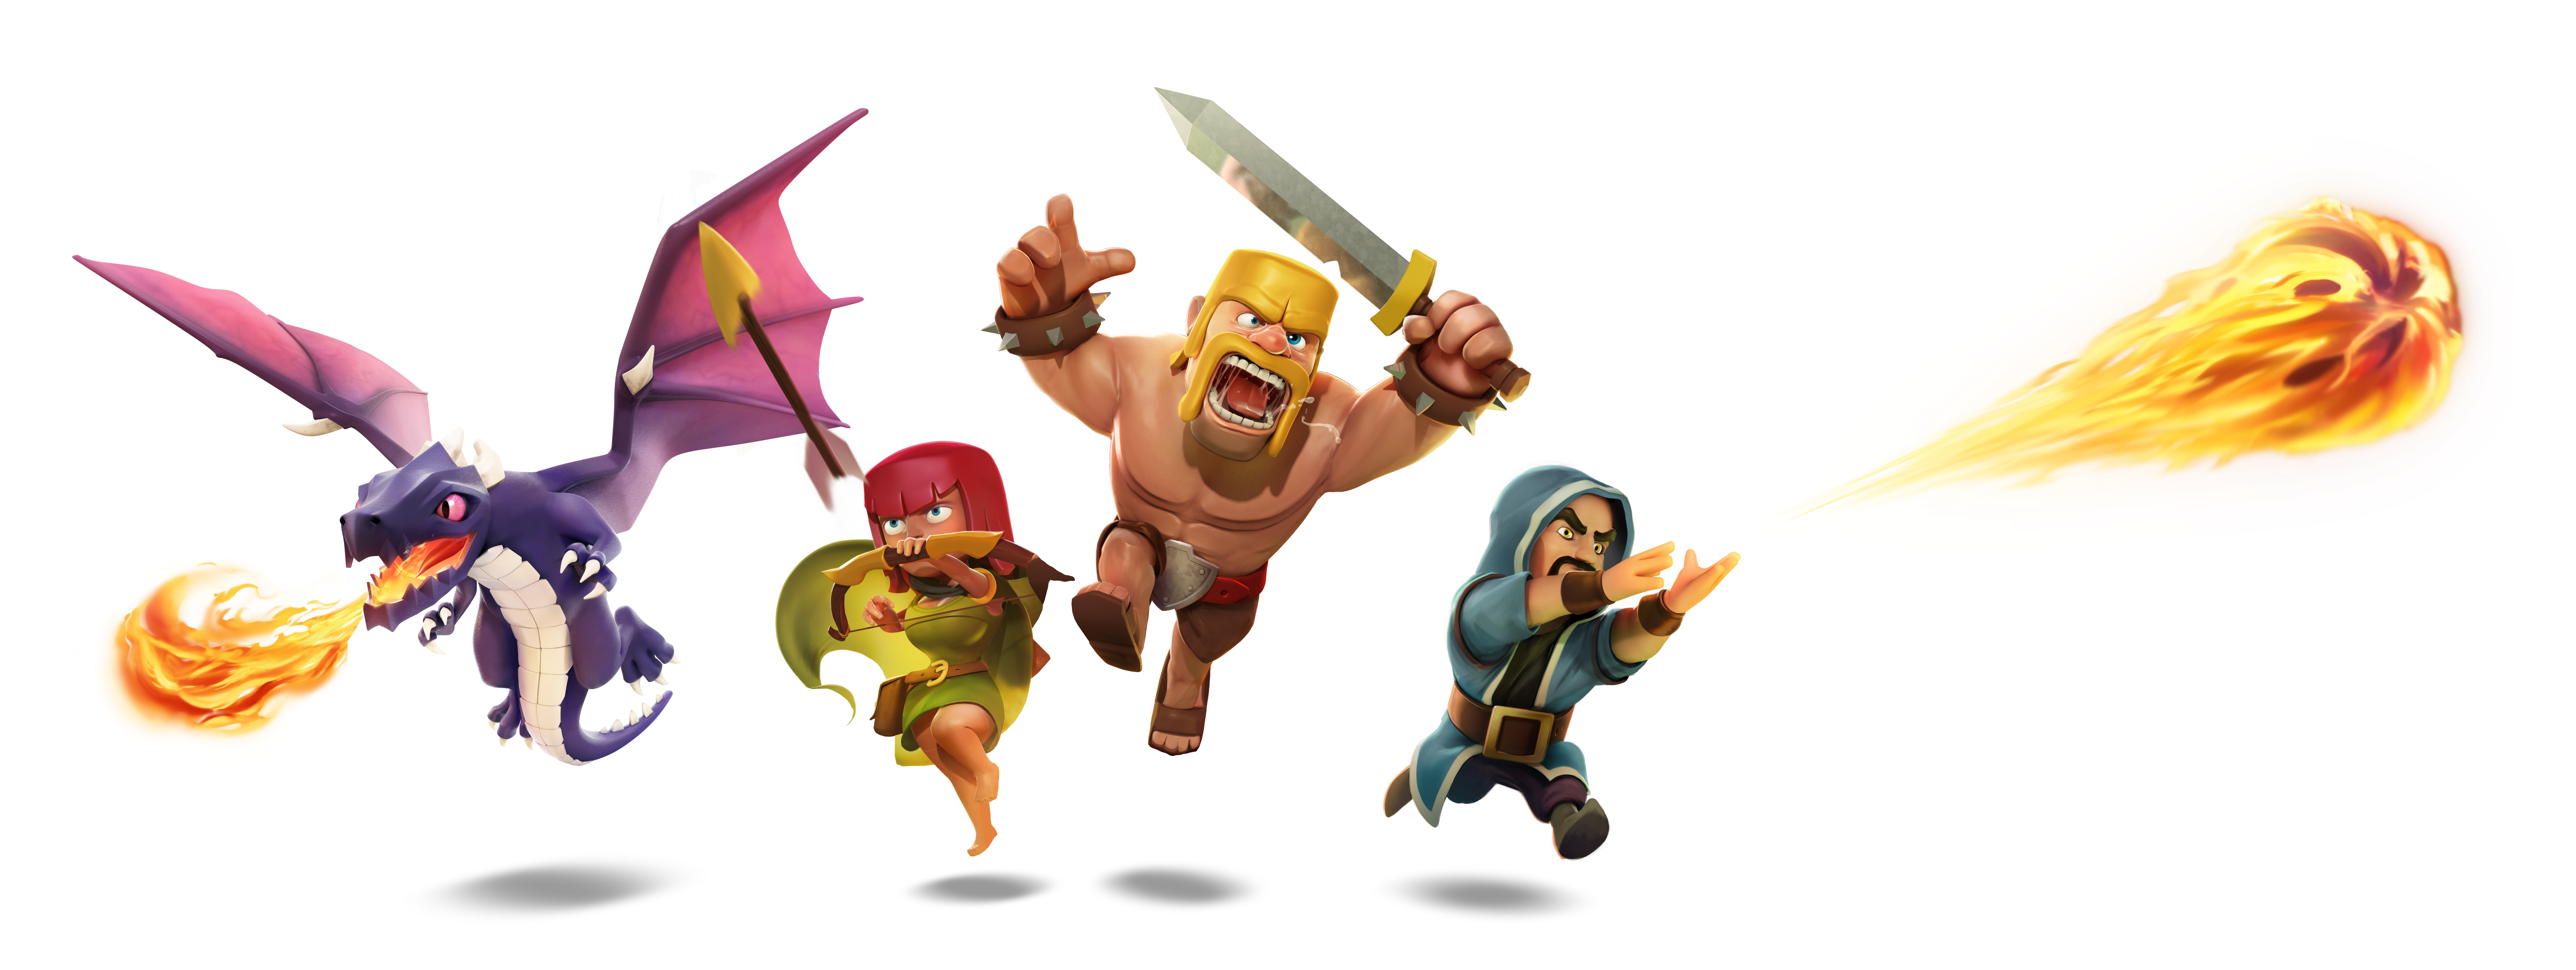 http://brokenanalog pluspng.com/wp-content/u...haracters2.png PlusPng.com  - Clash Of Clans PNG